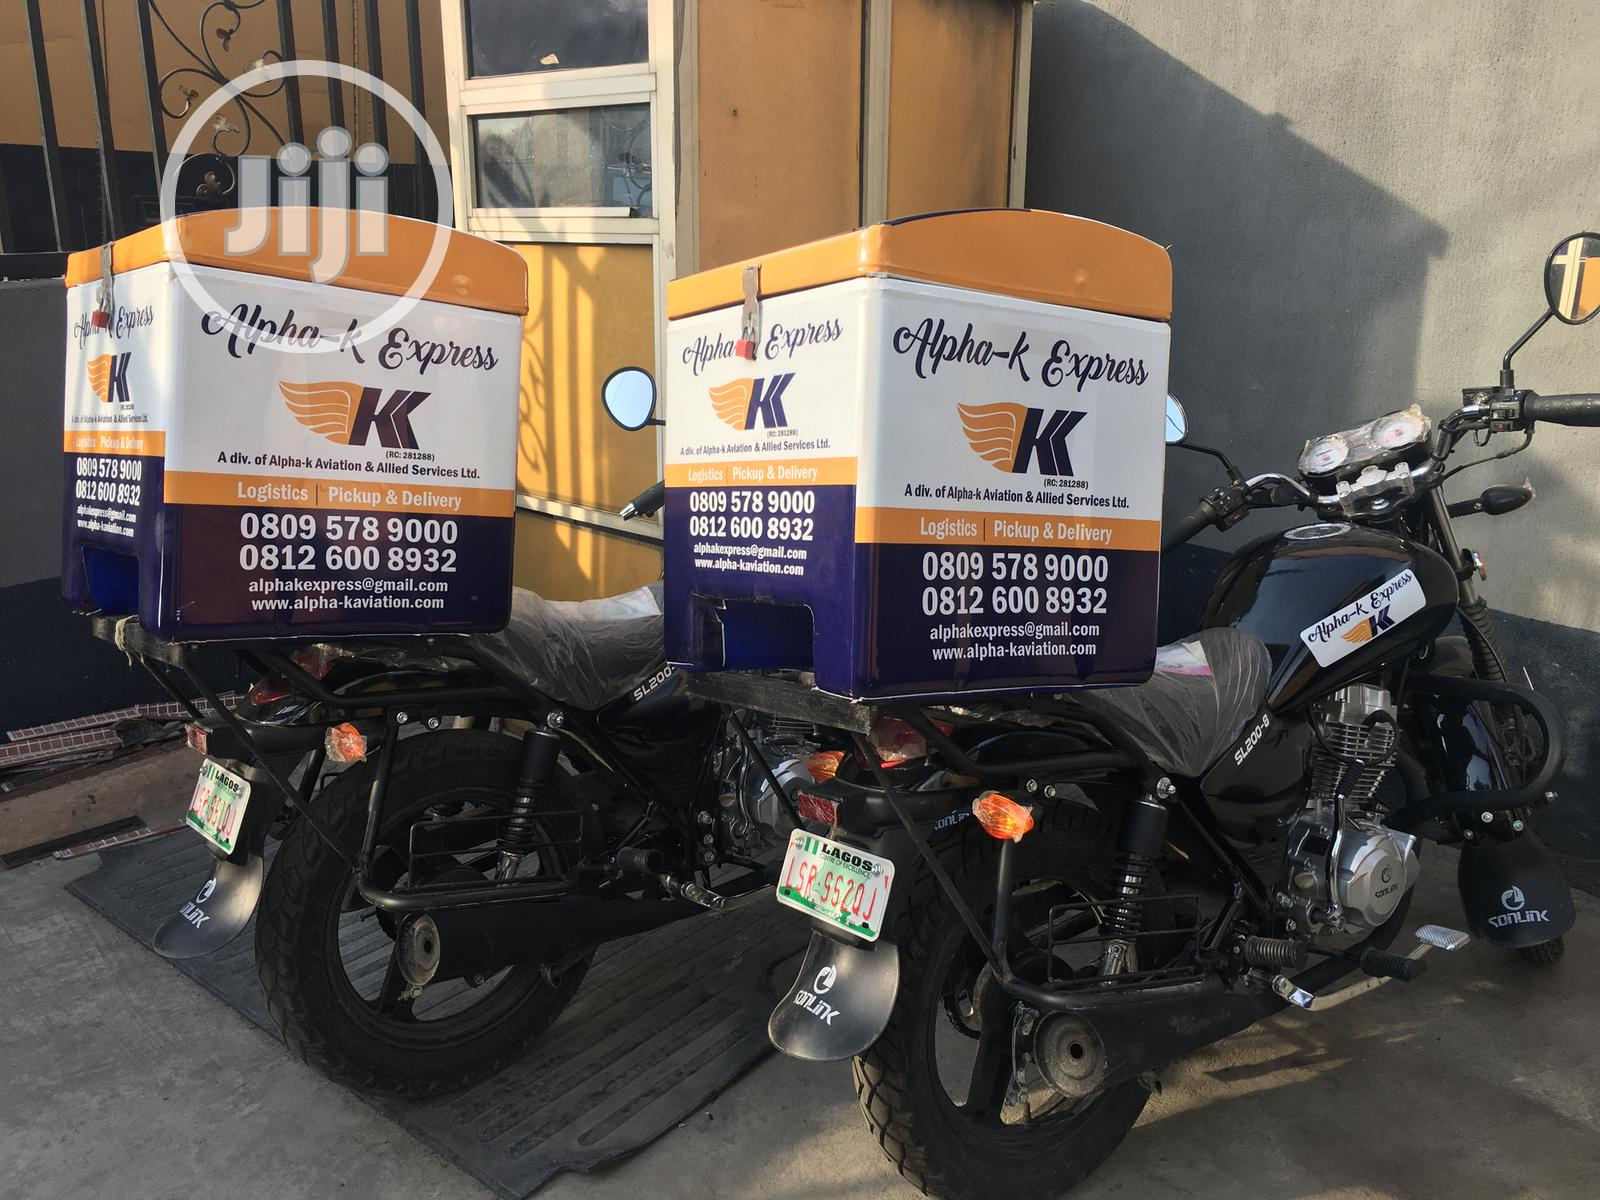 Pickup And Delivery Services